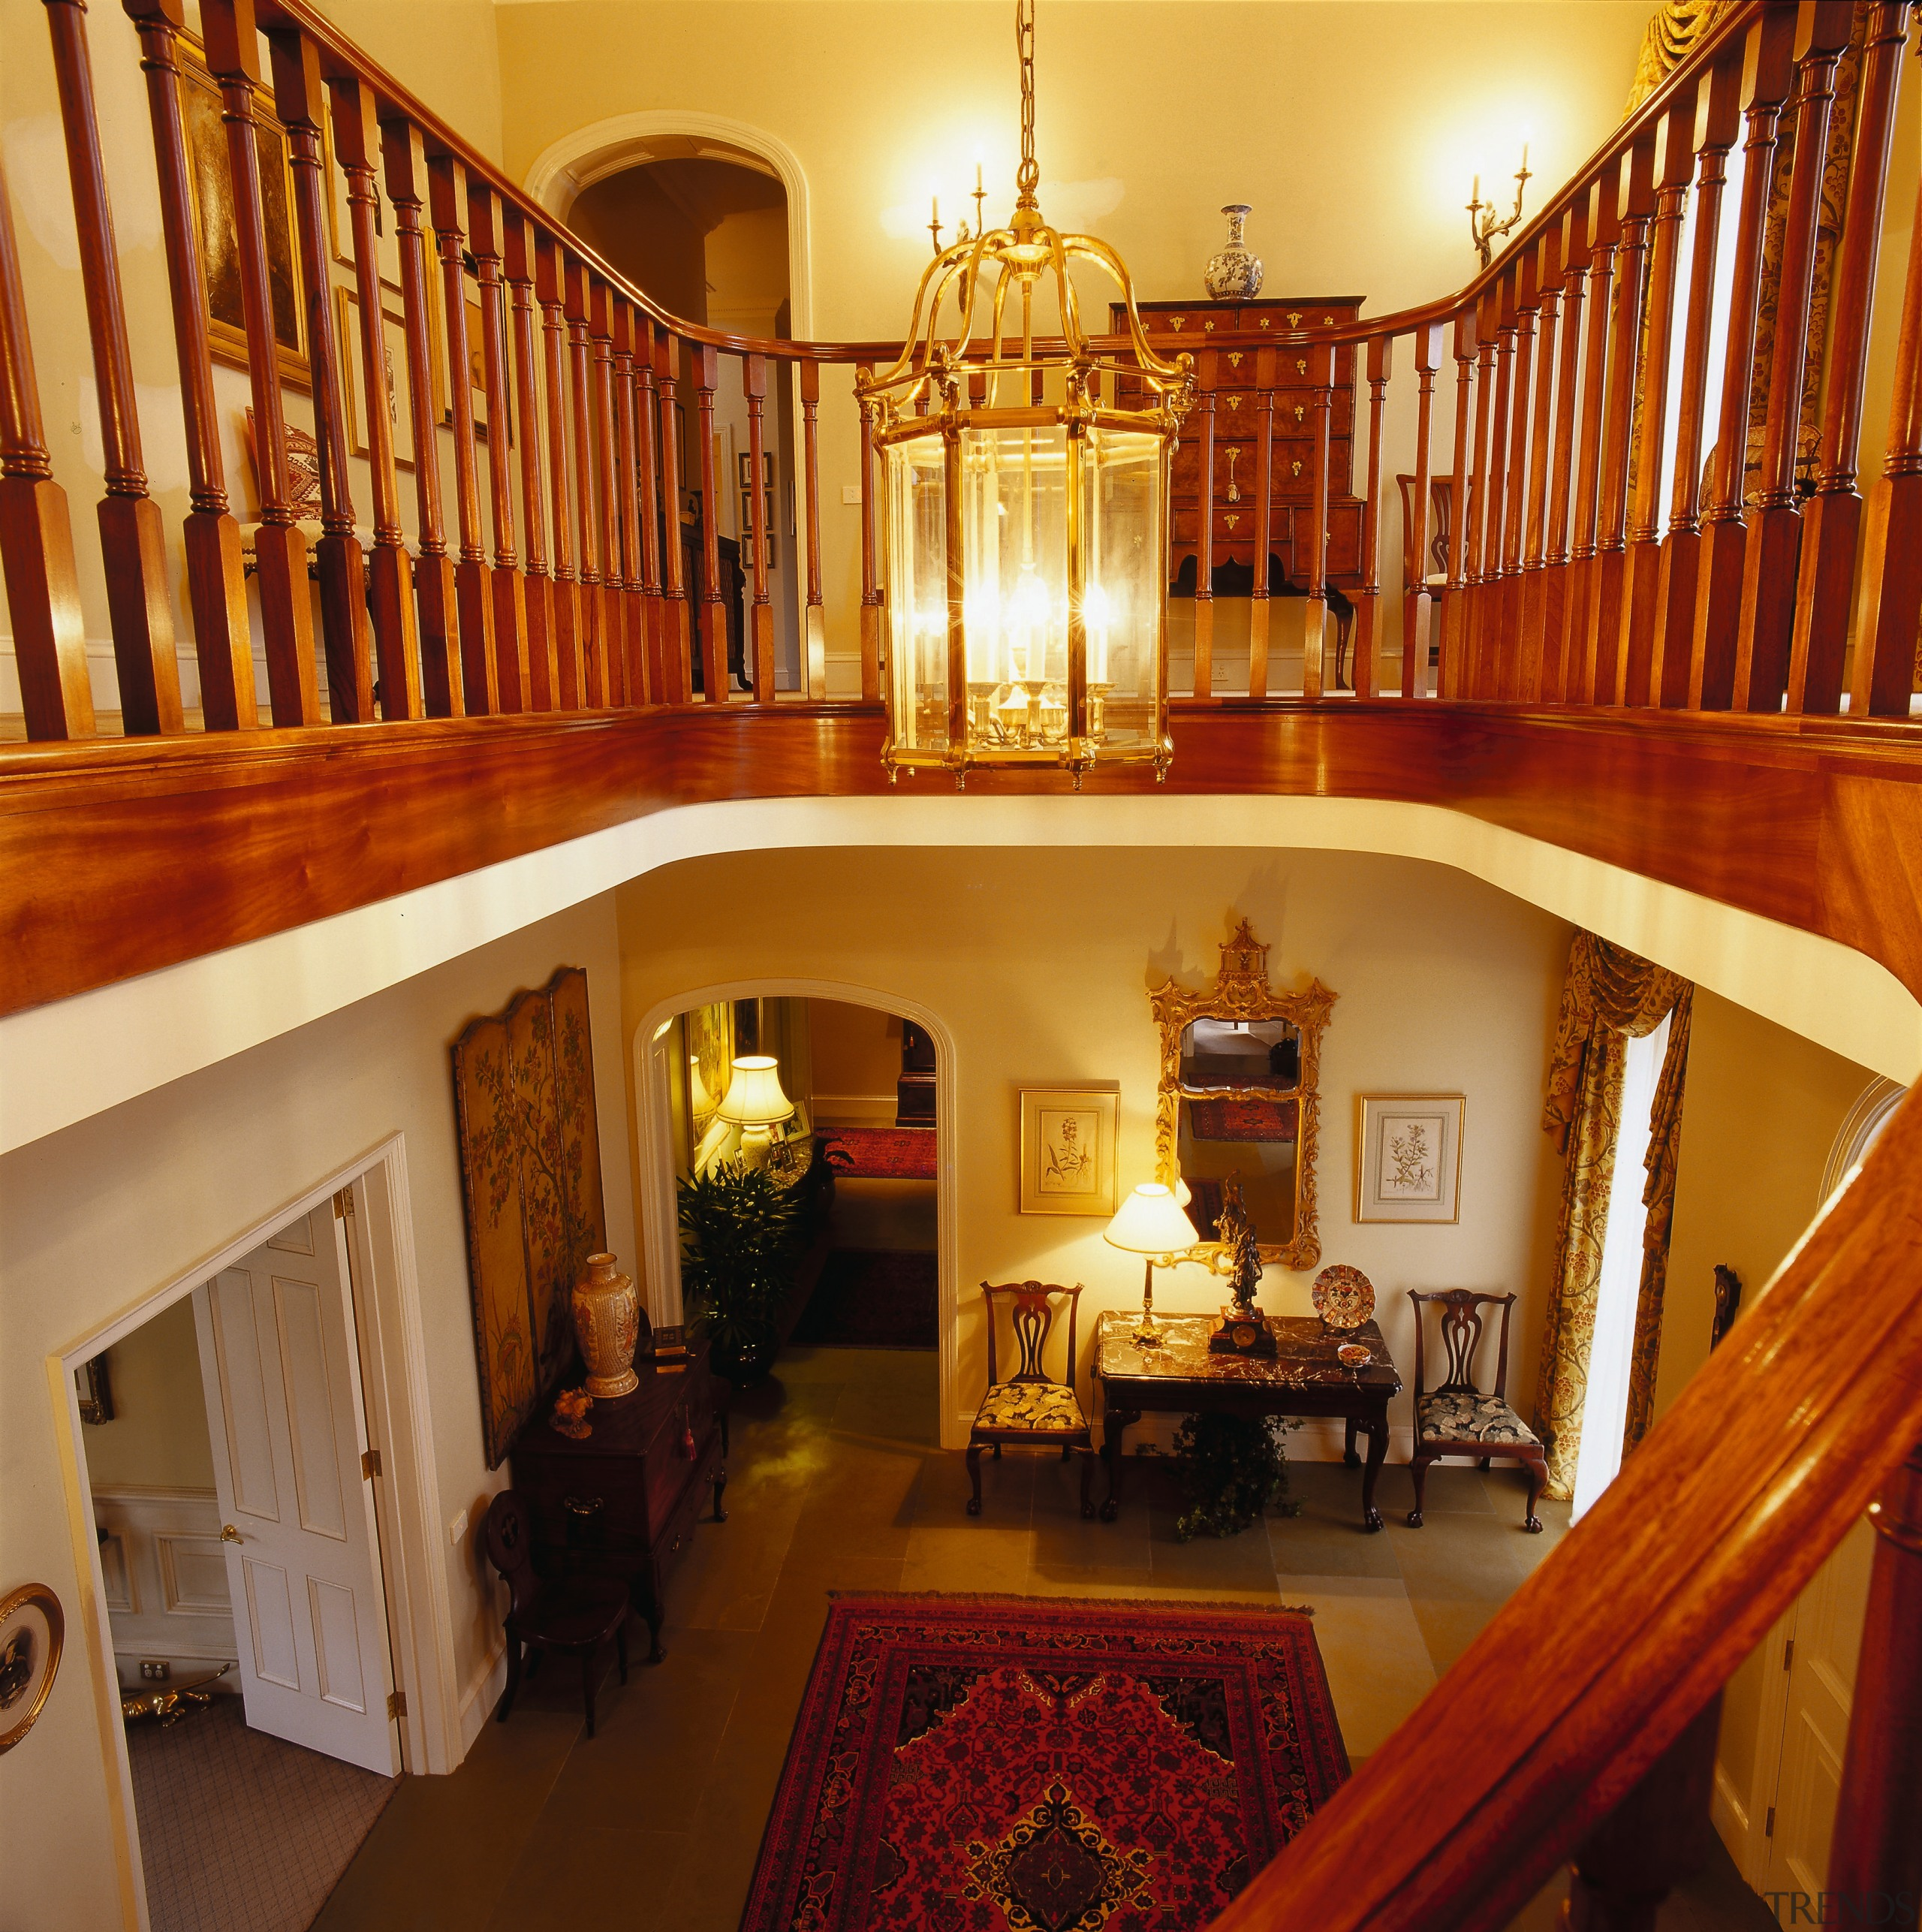 View of the stairway hall, grand wooden balcolny ceiling, estate, flooring, home, interior design, living room, lobby, real estate, room, stairs, wood, brown, orange